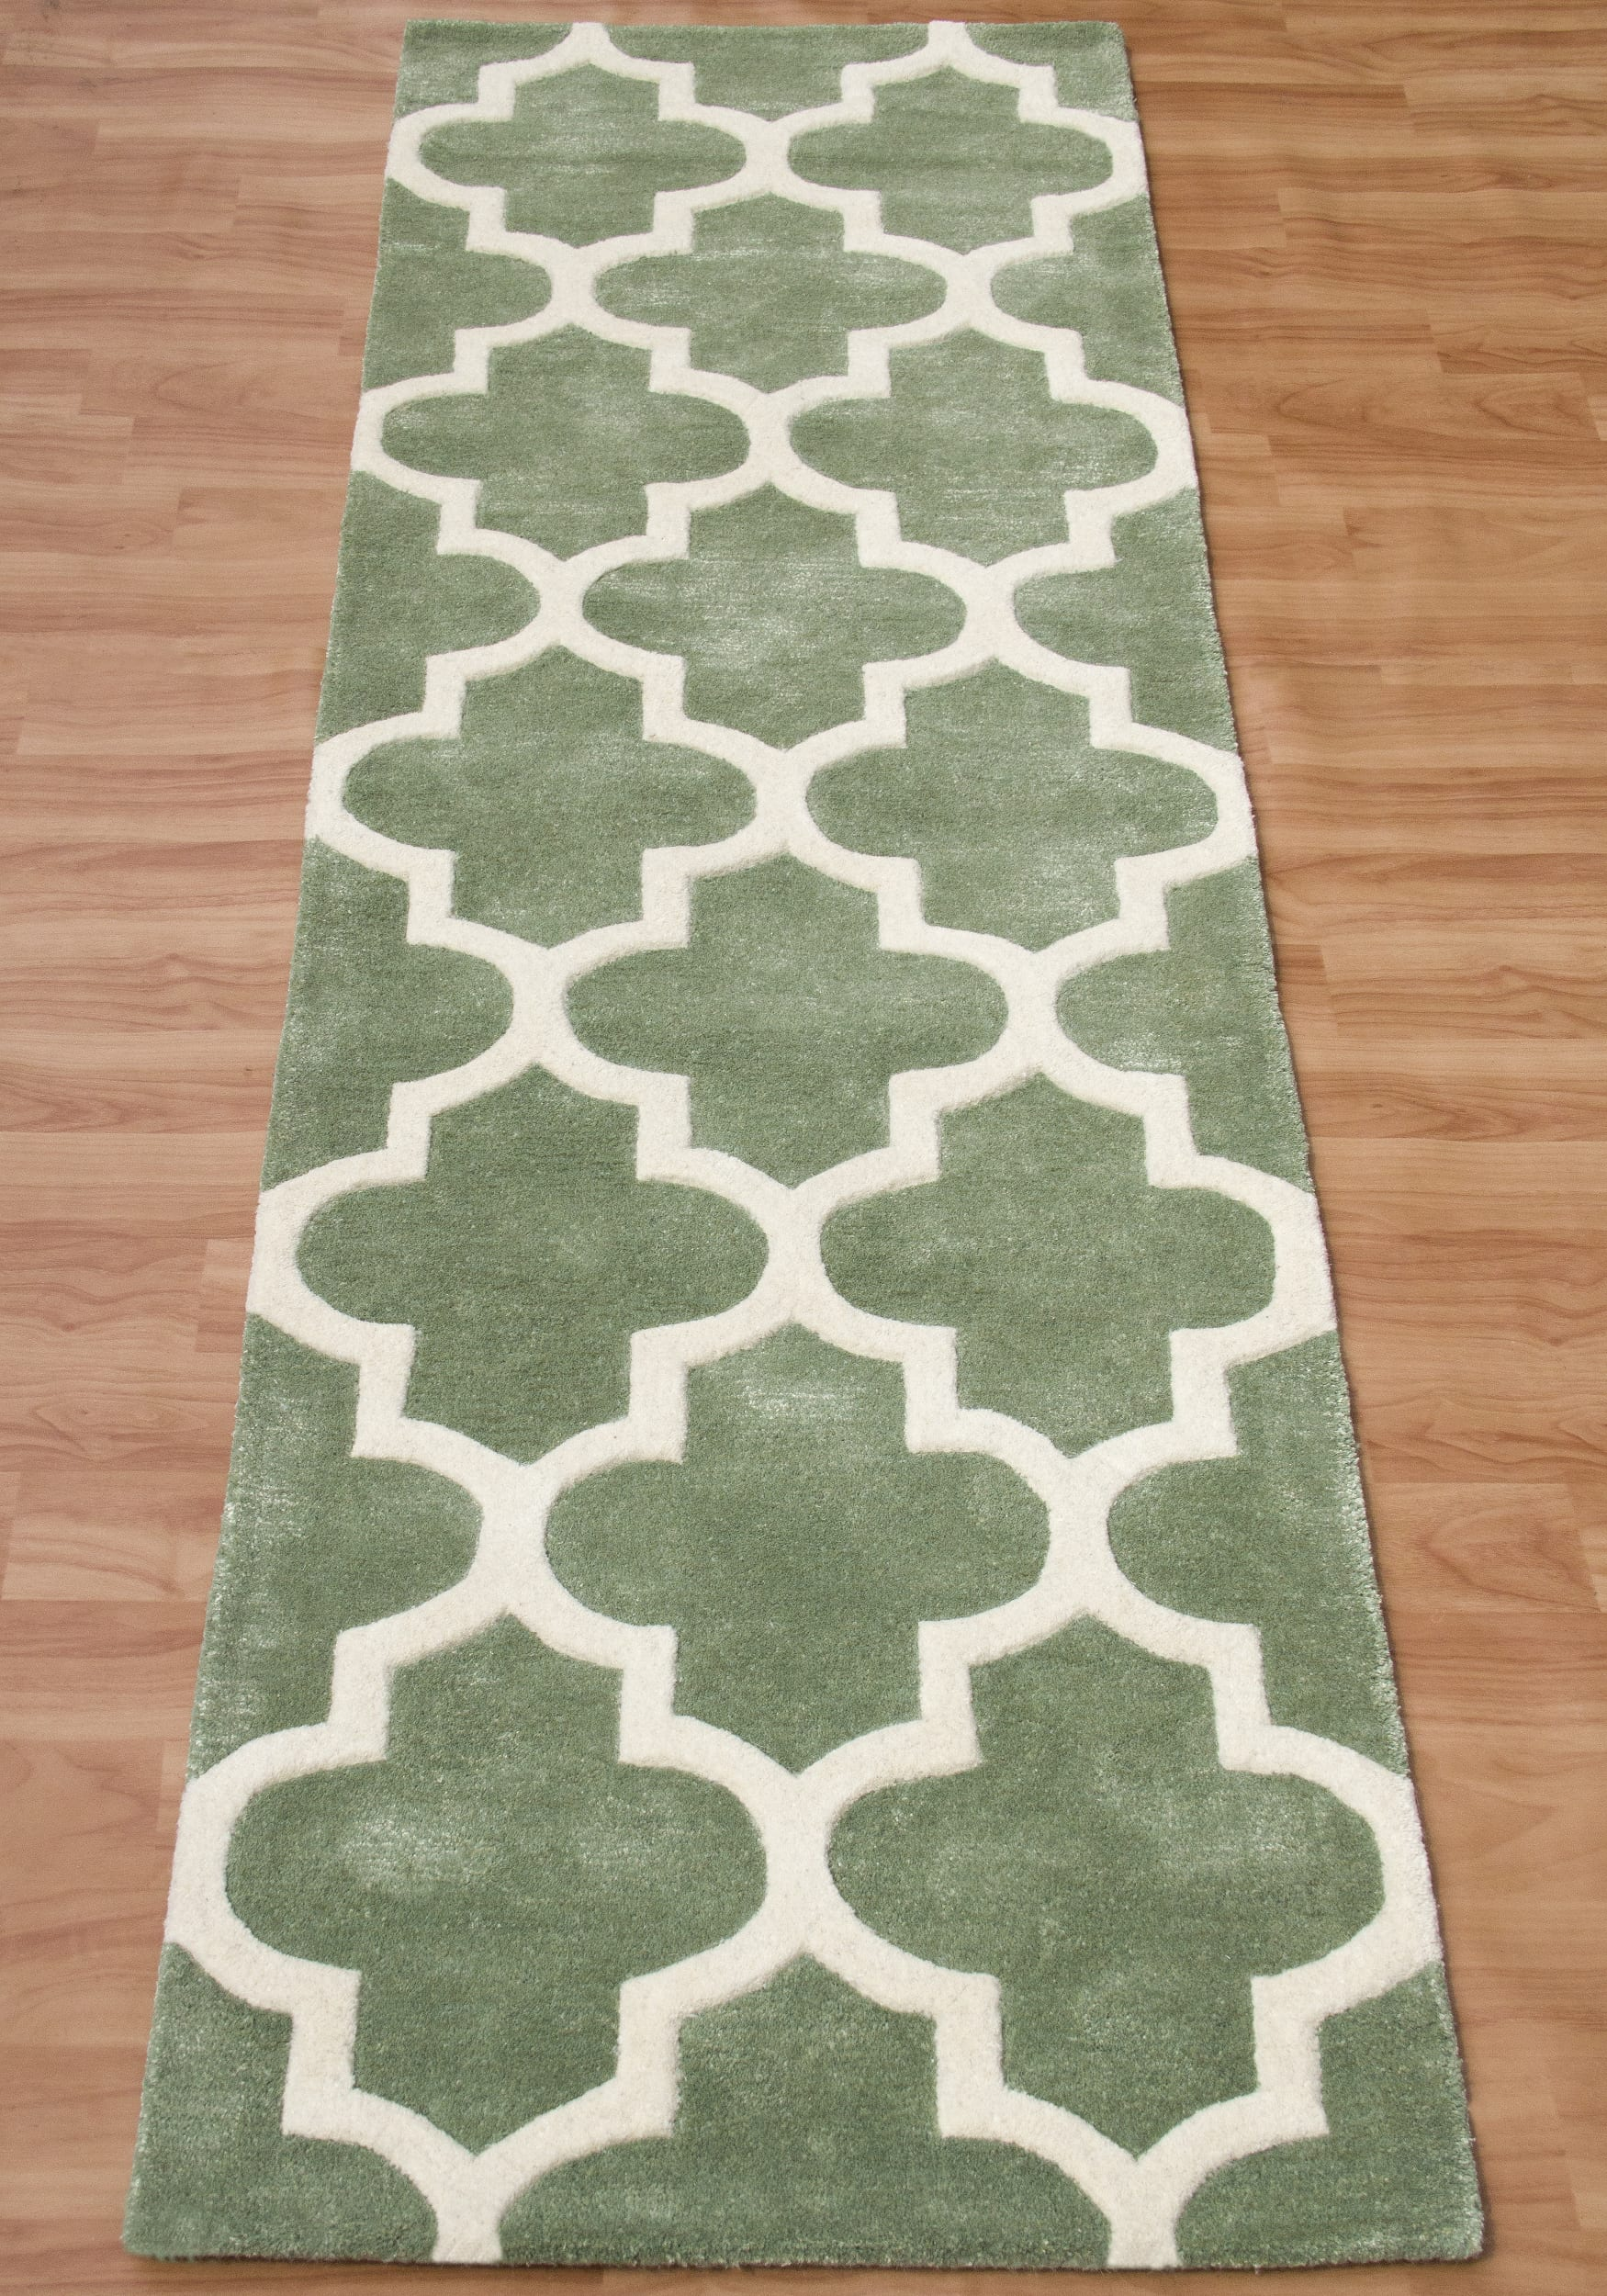 Arabesque Rug By Oriental Weavers Colour Sage Green Rugs Uk